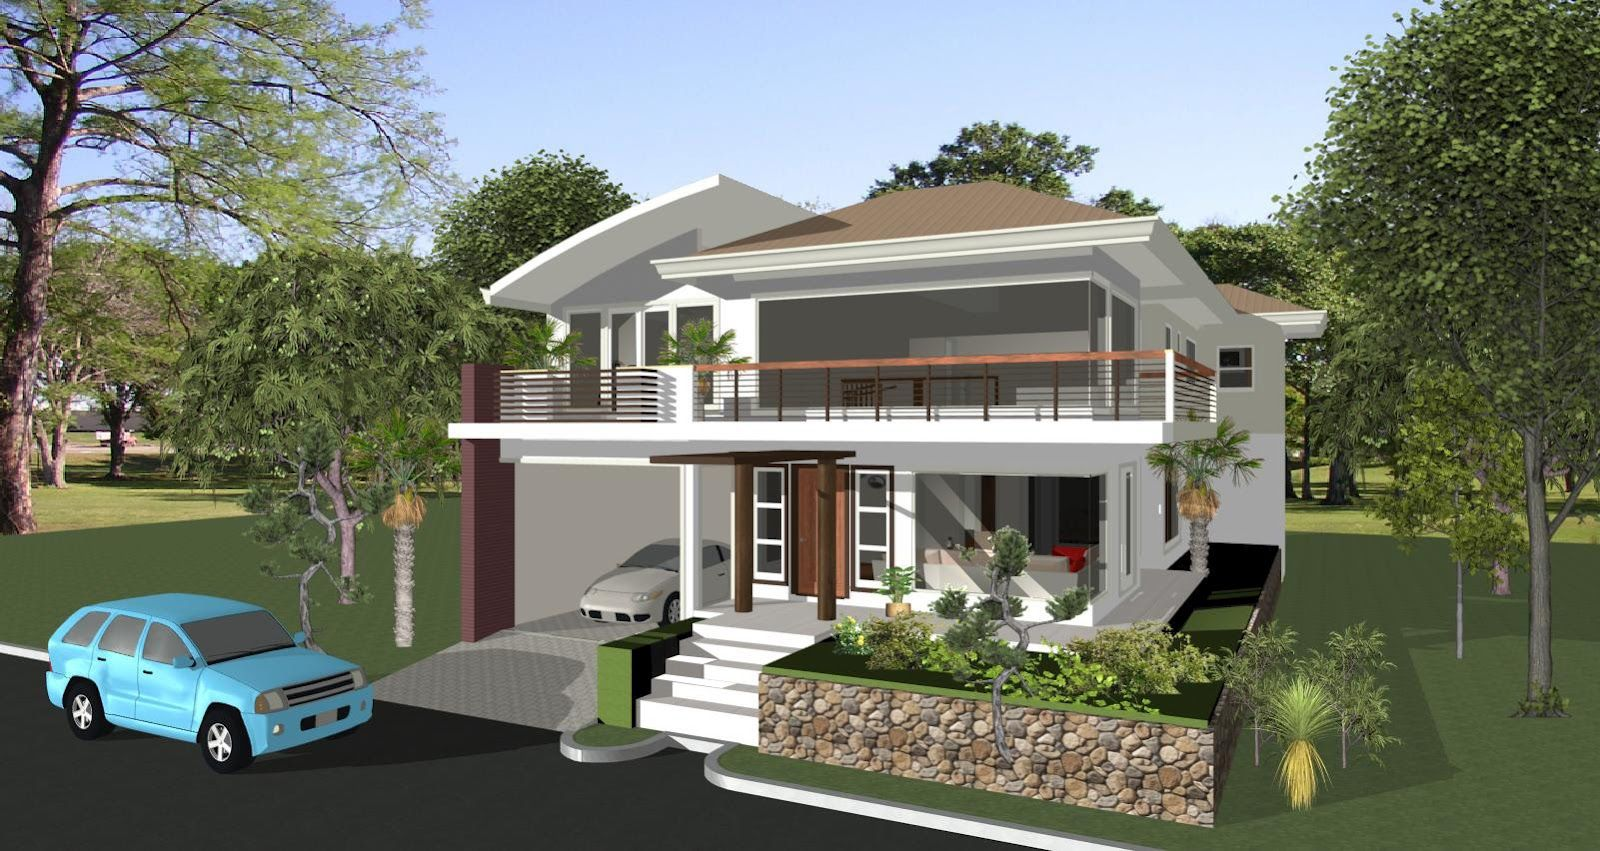 Dream Home Designs Erecre Group Realty Design And: architectural house plan styles